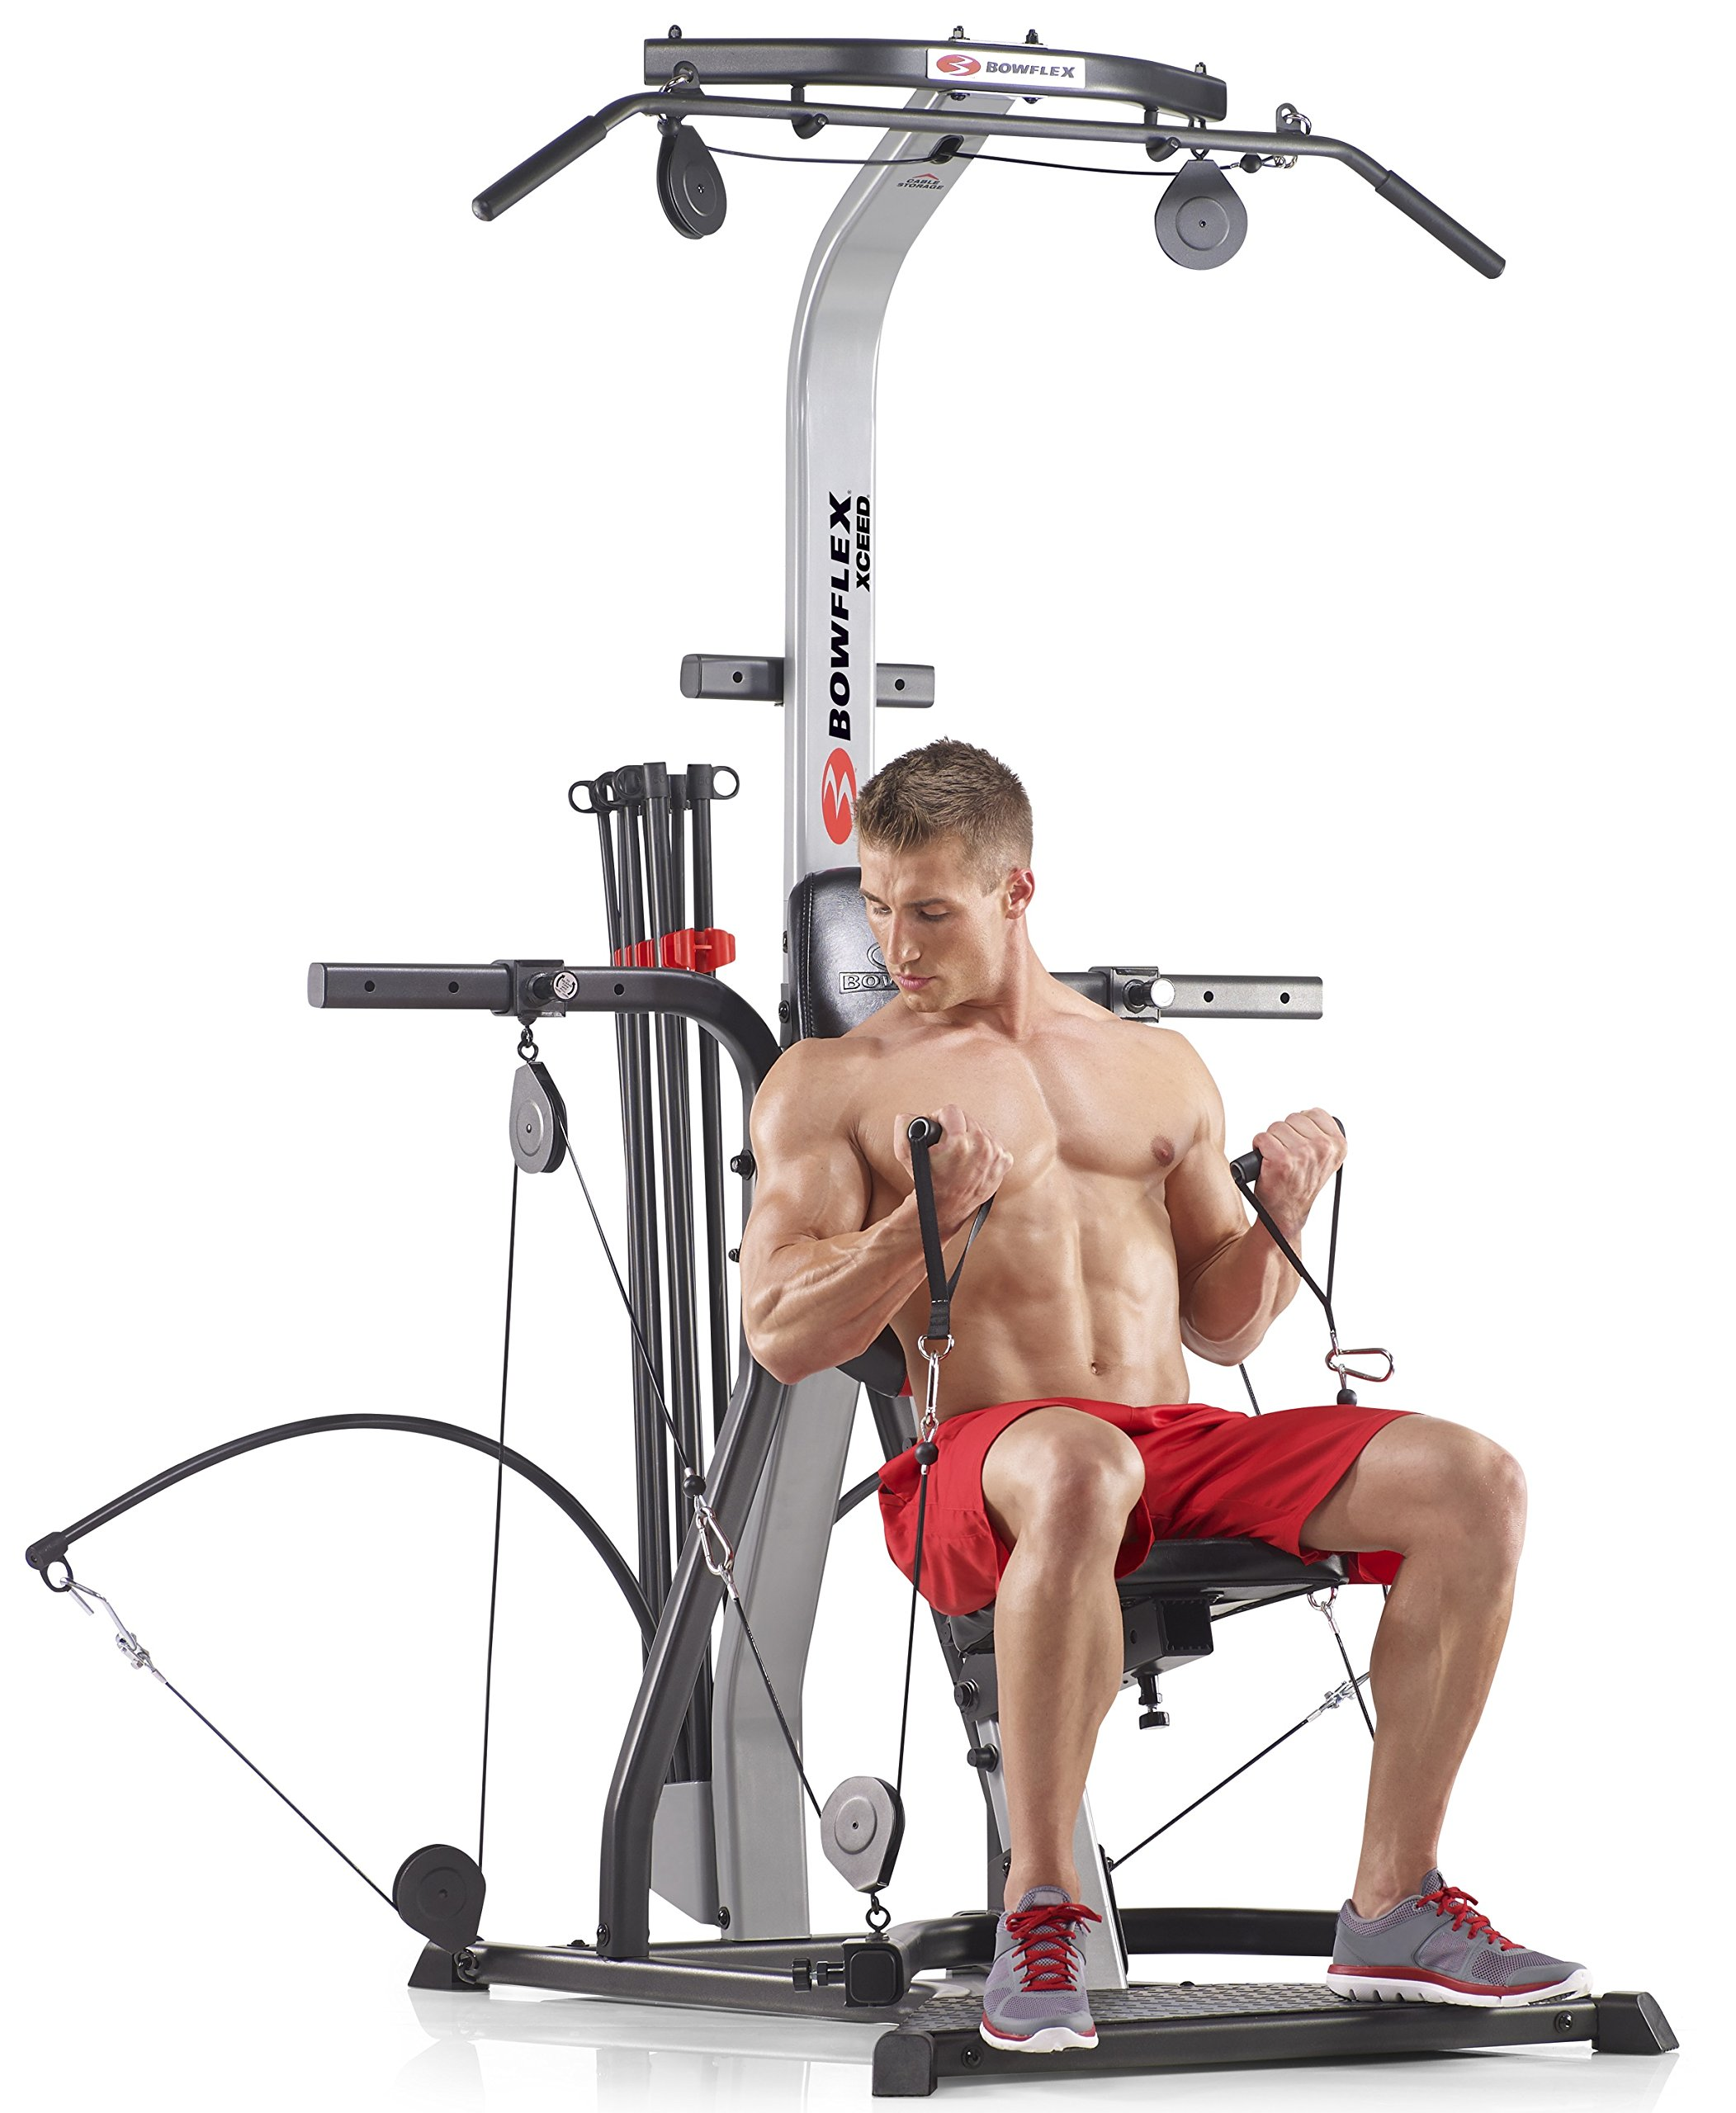 Bowflex Home Gym Series - Best All in 1 Home Gyms Without Free Weights